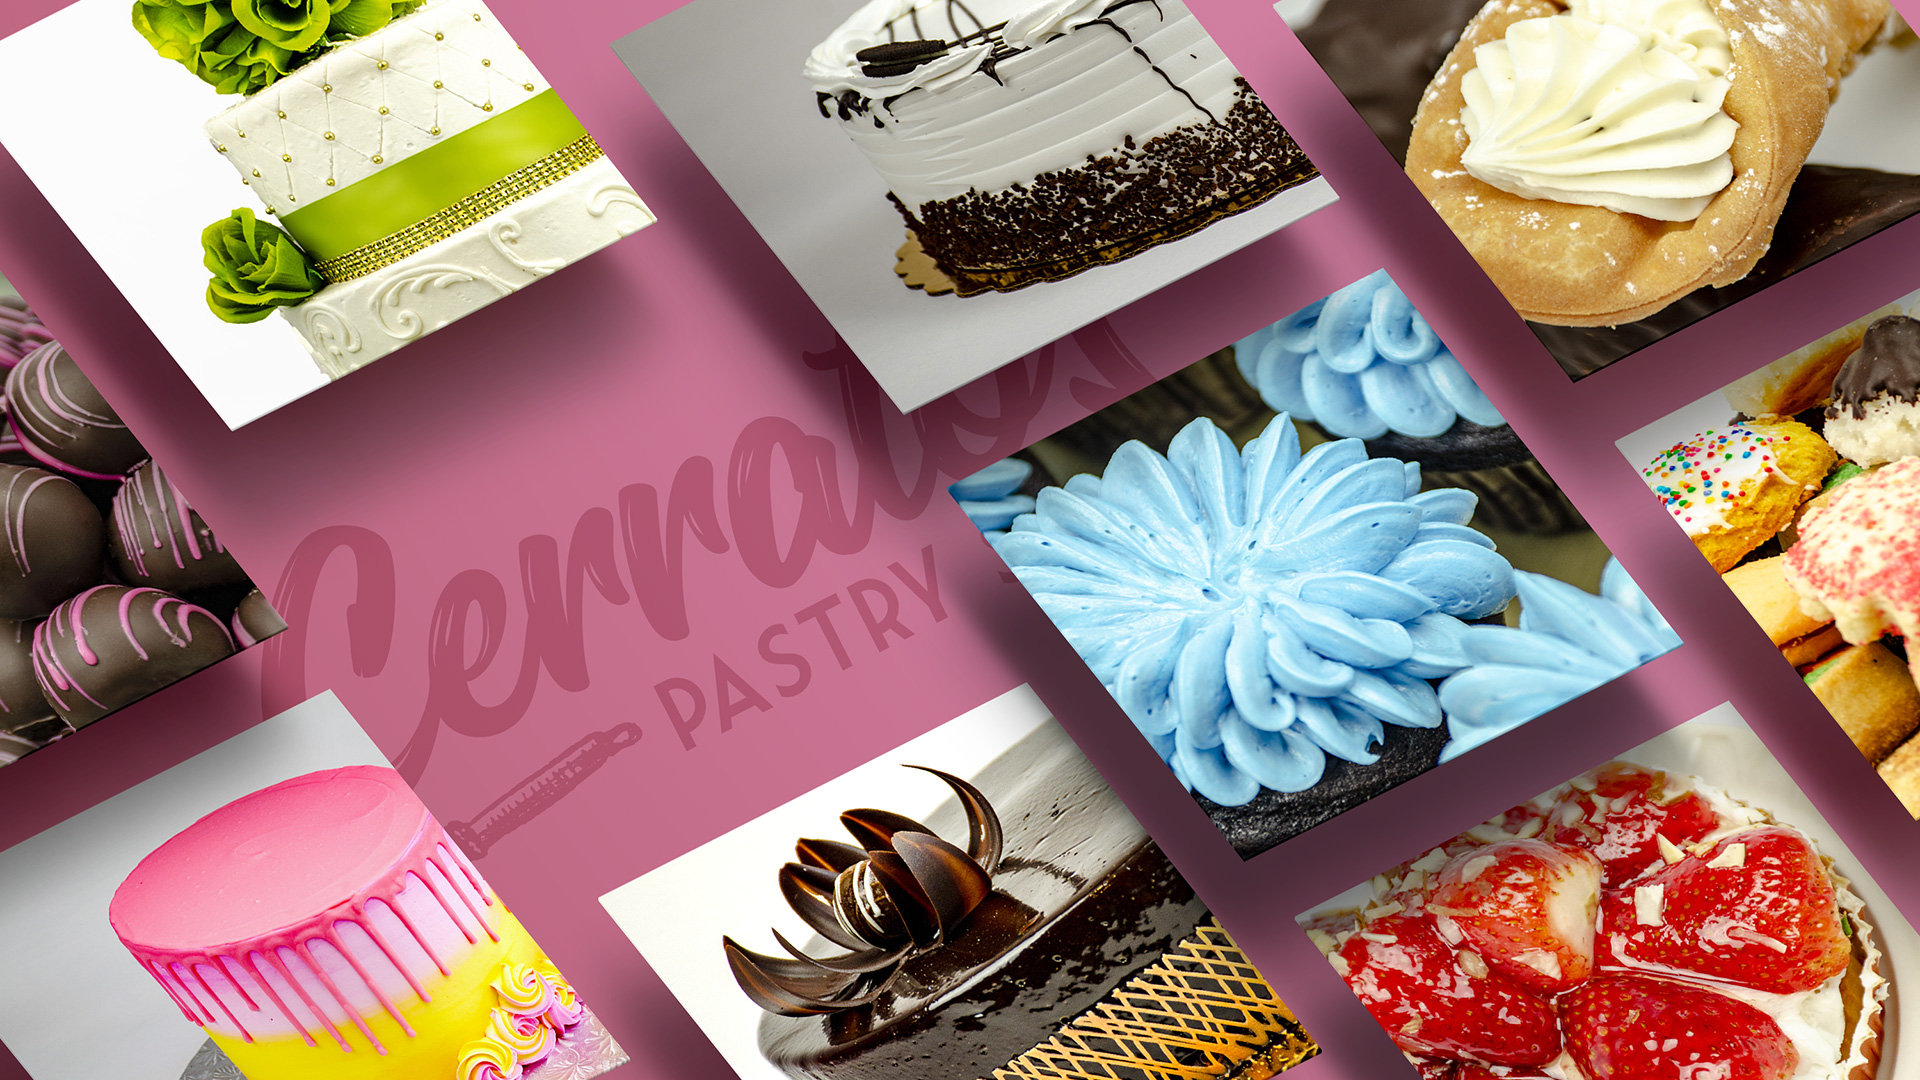 DIF Design Project - Cerrato's Bakery product photography